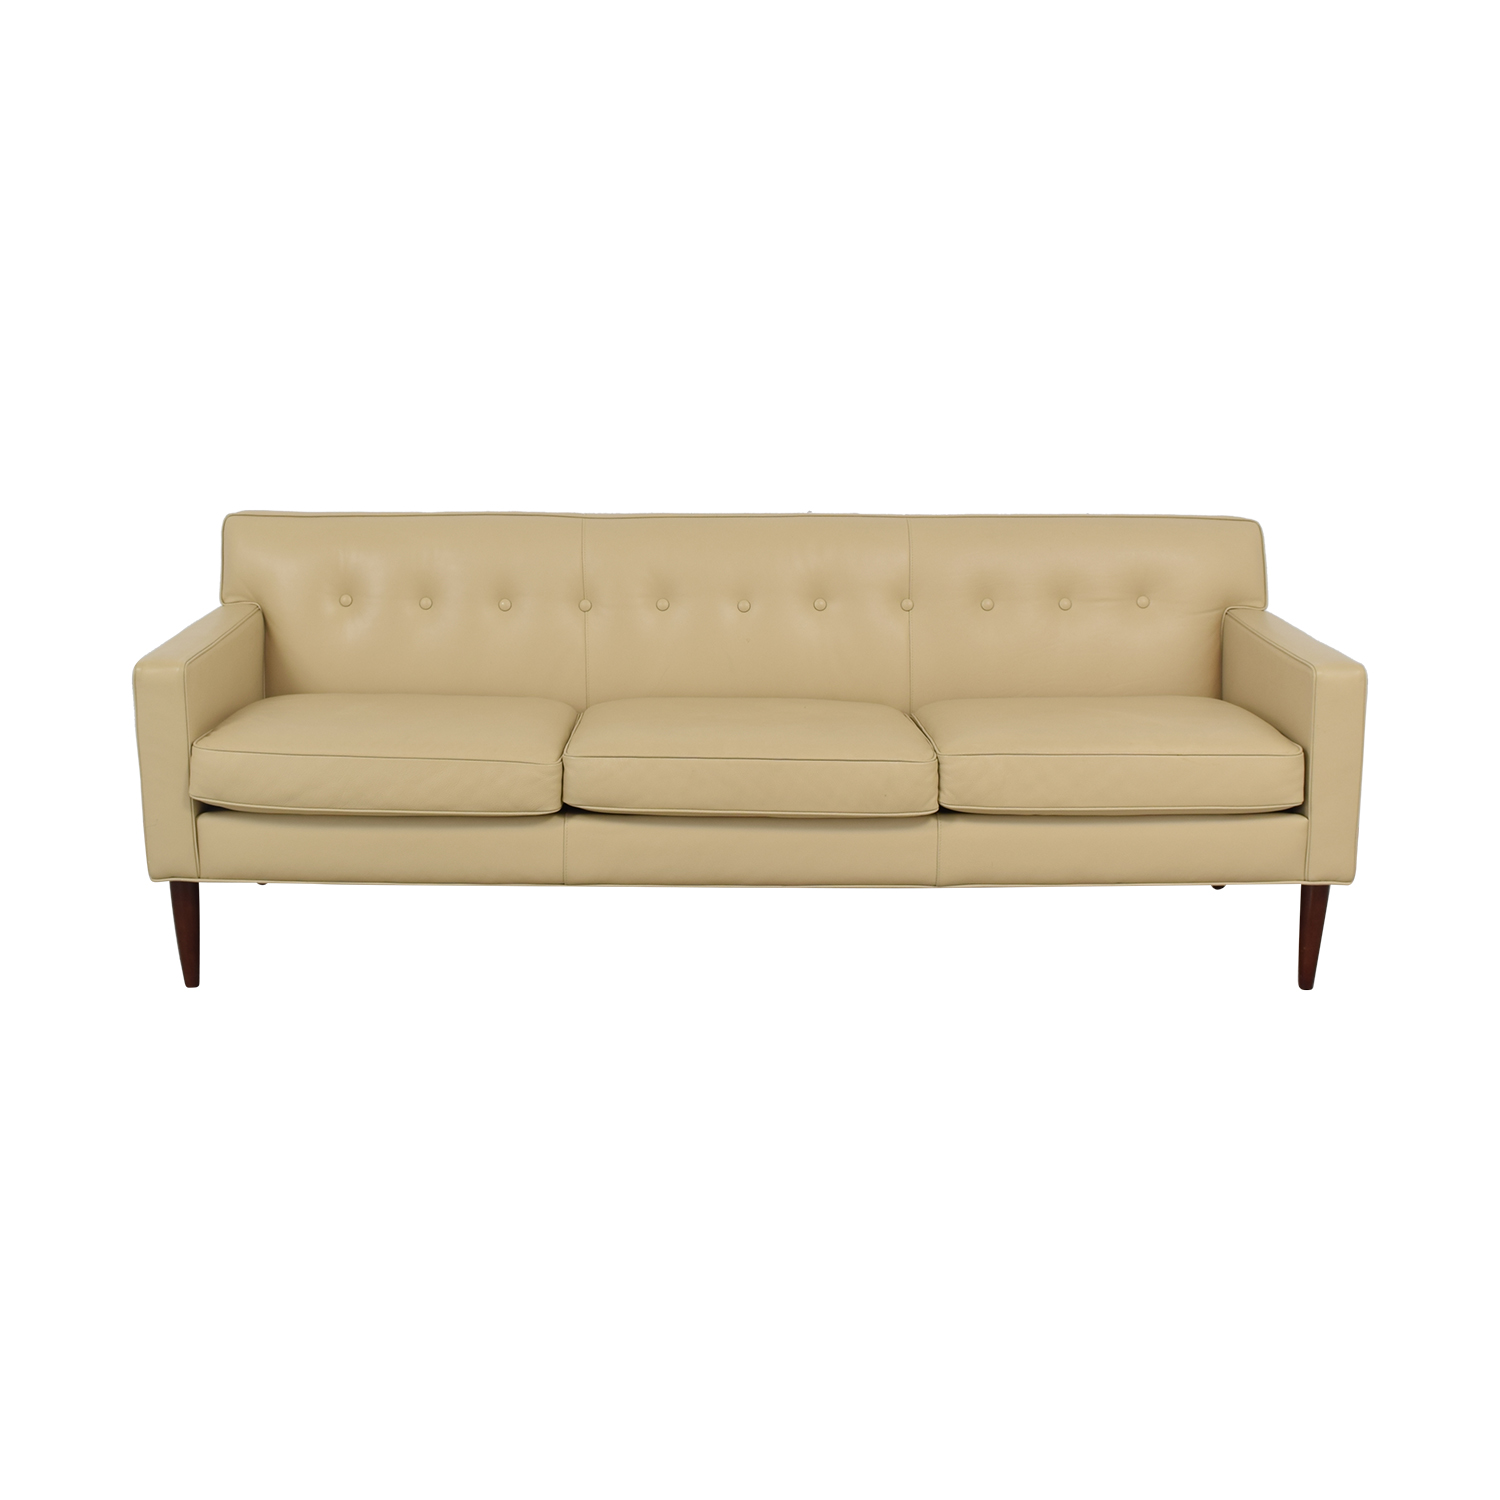 buy American Leather American Leather Quincy Sofa online